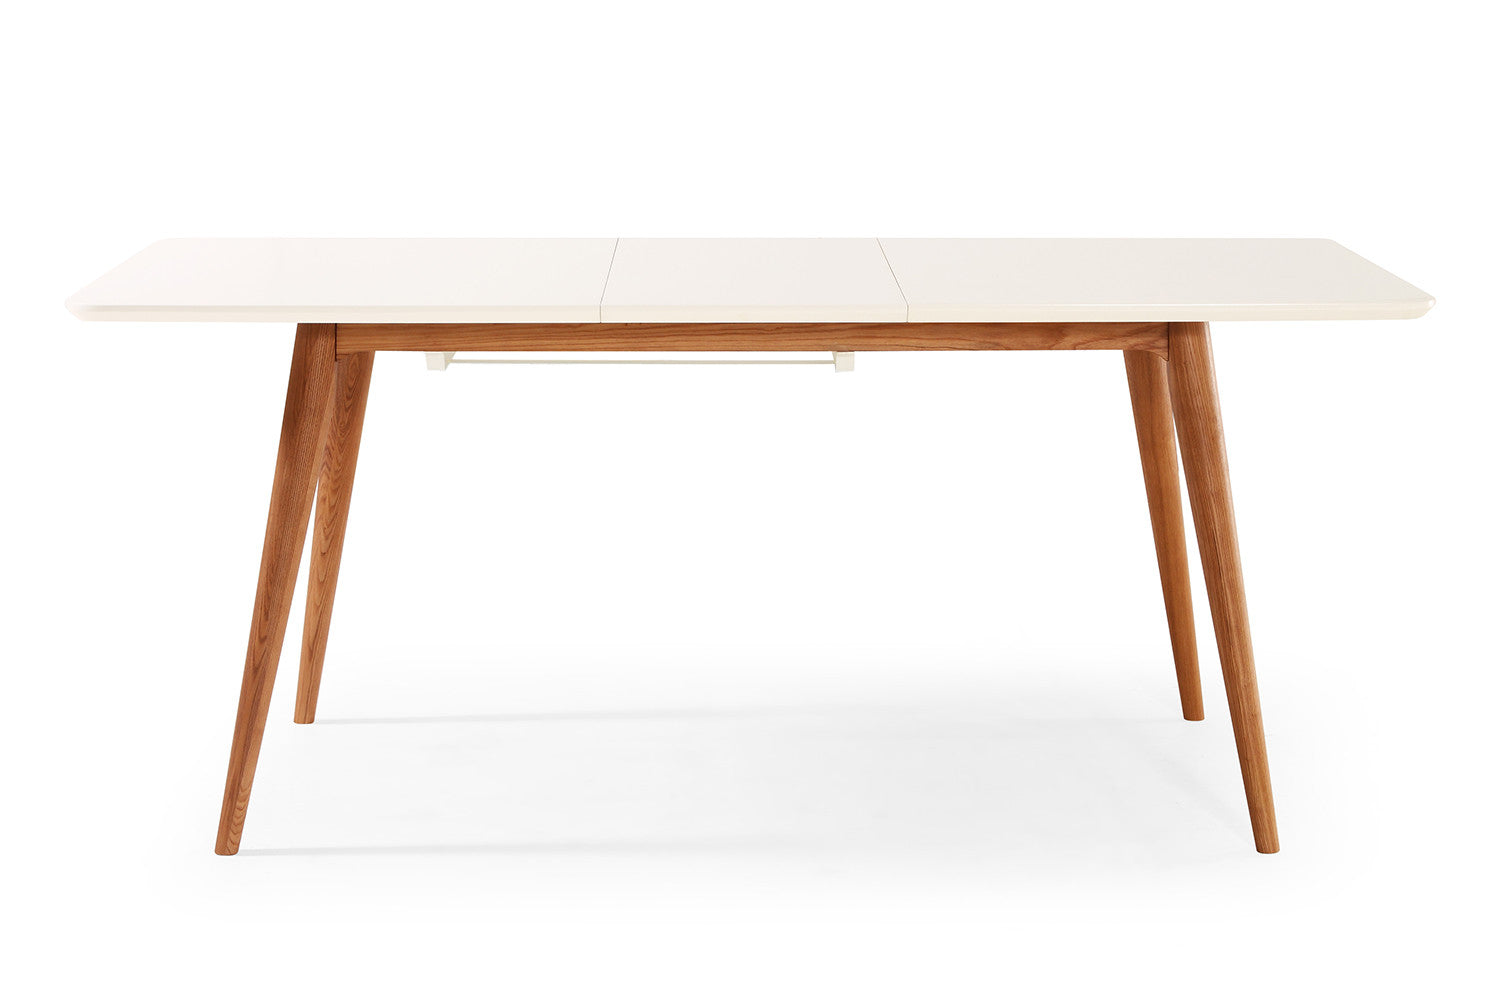 Table de salle manger extensible scandinave wyna dewarens for Table a manger ronde scandinave